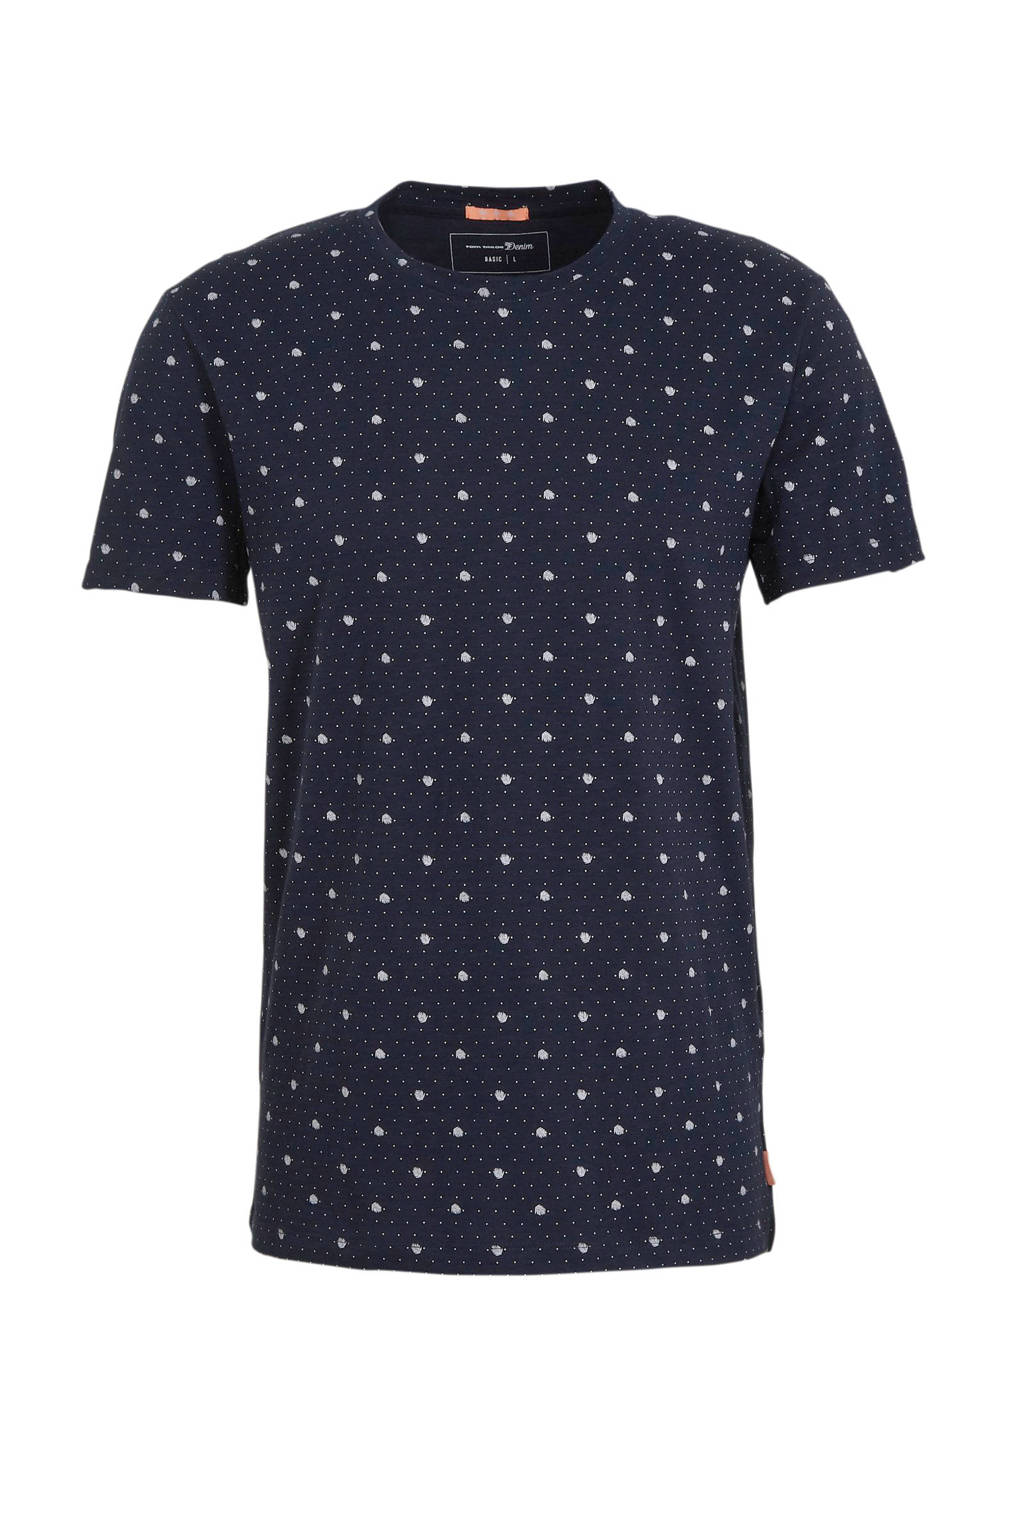 Tom Tailor T-shirt met all over print donkerblauw, Donkerblauw